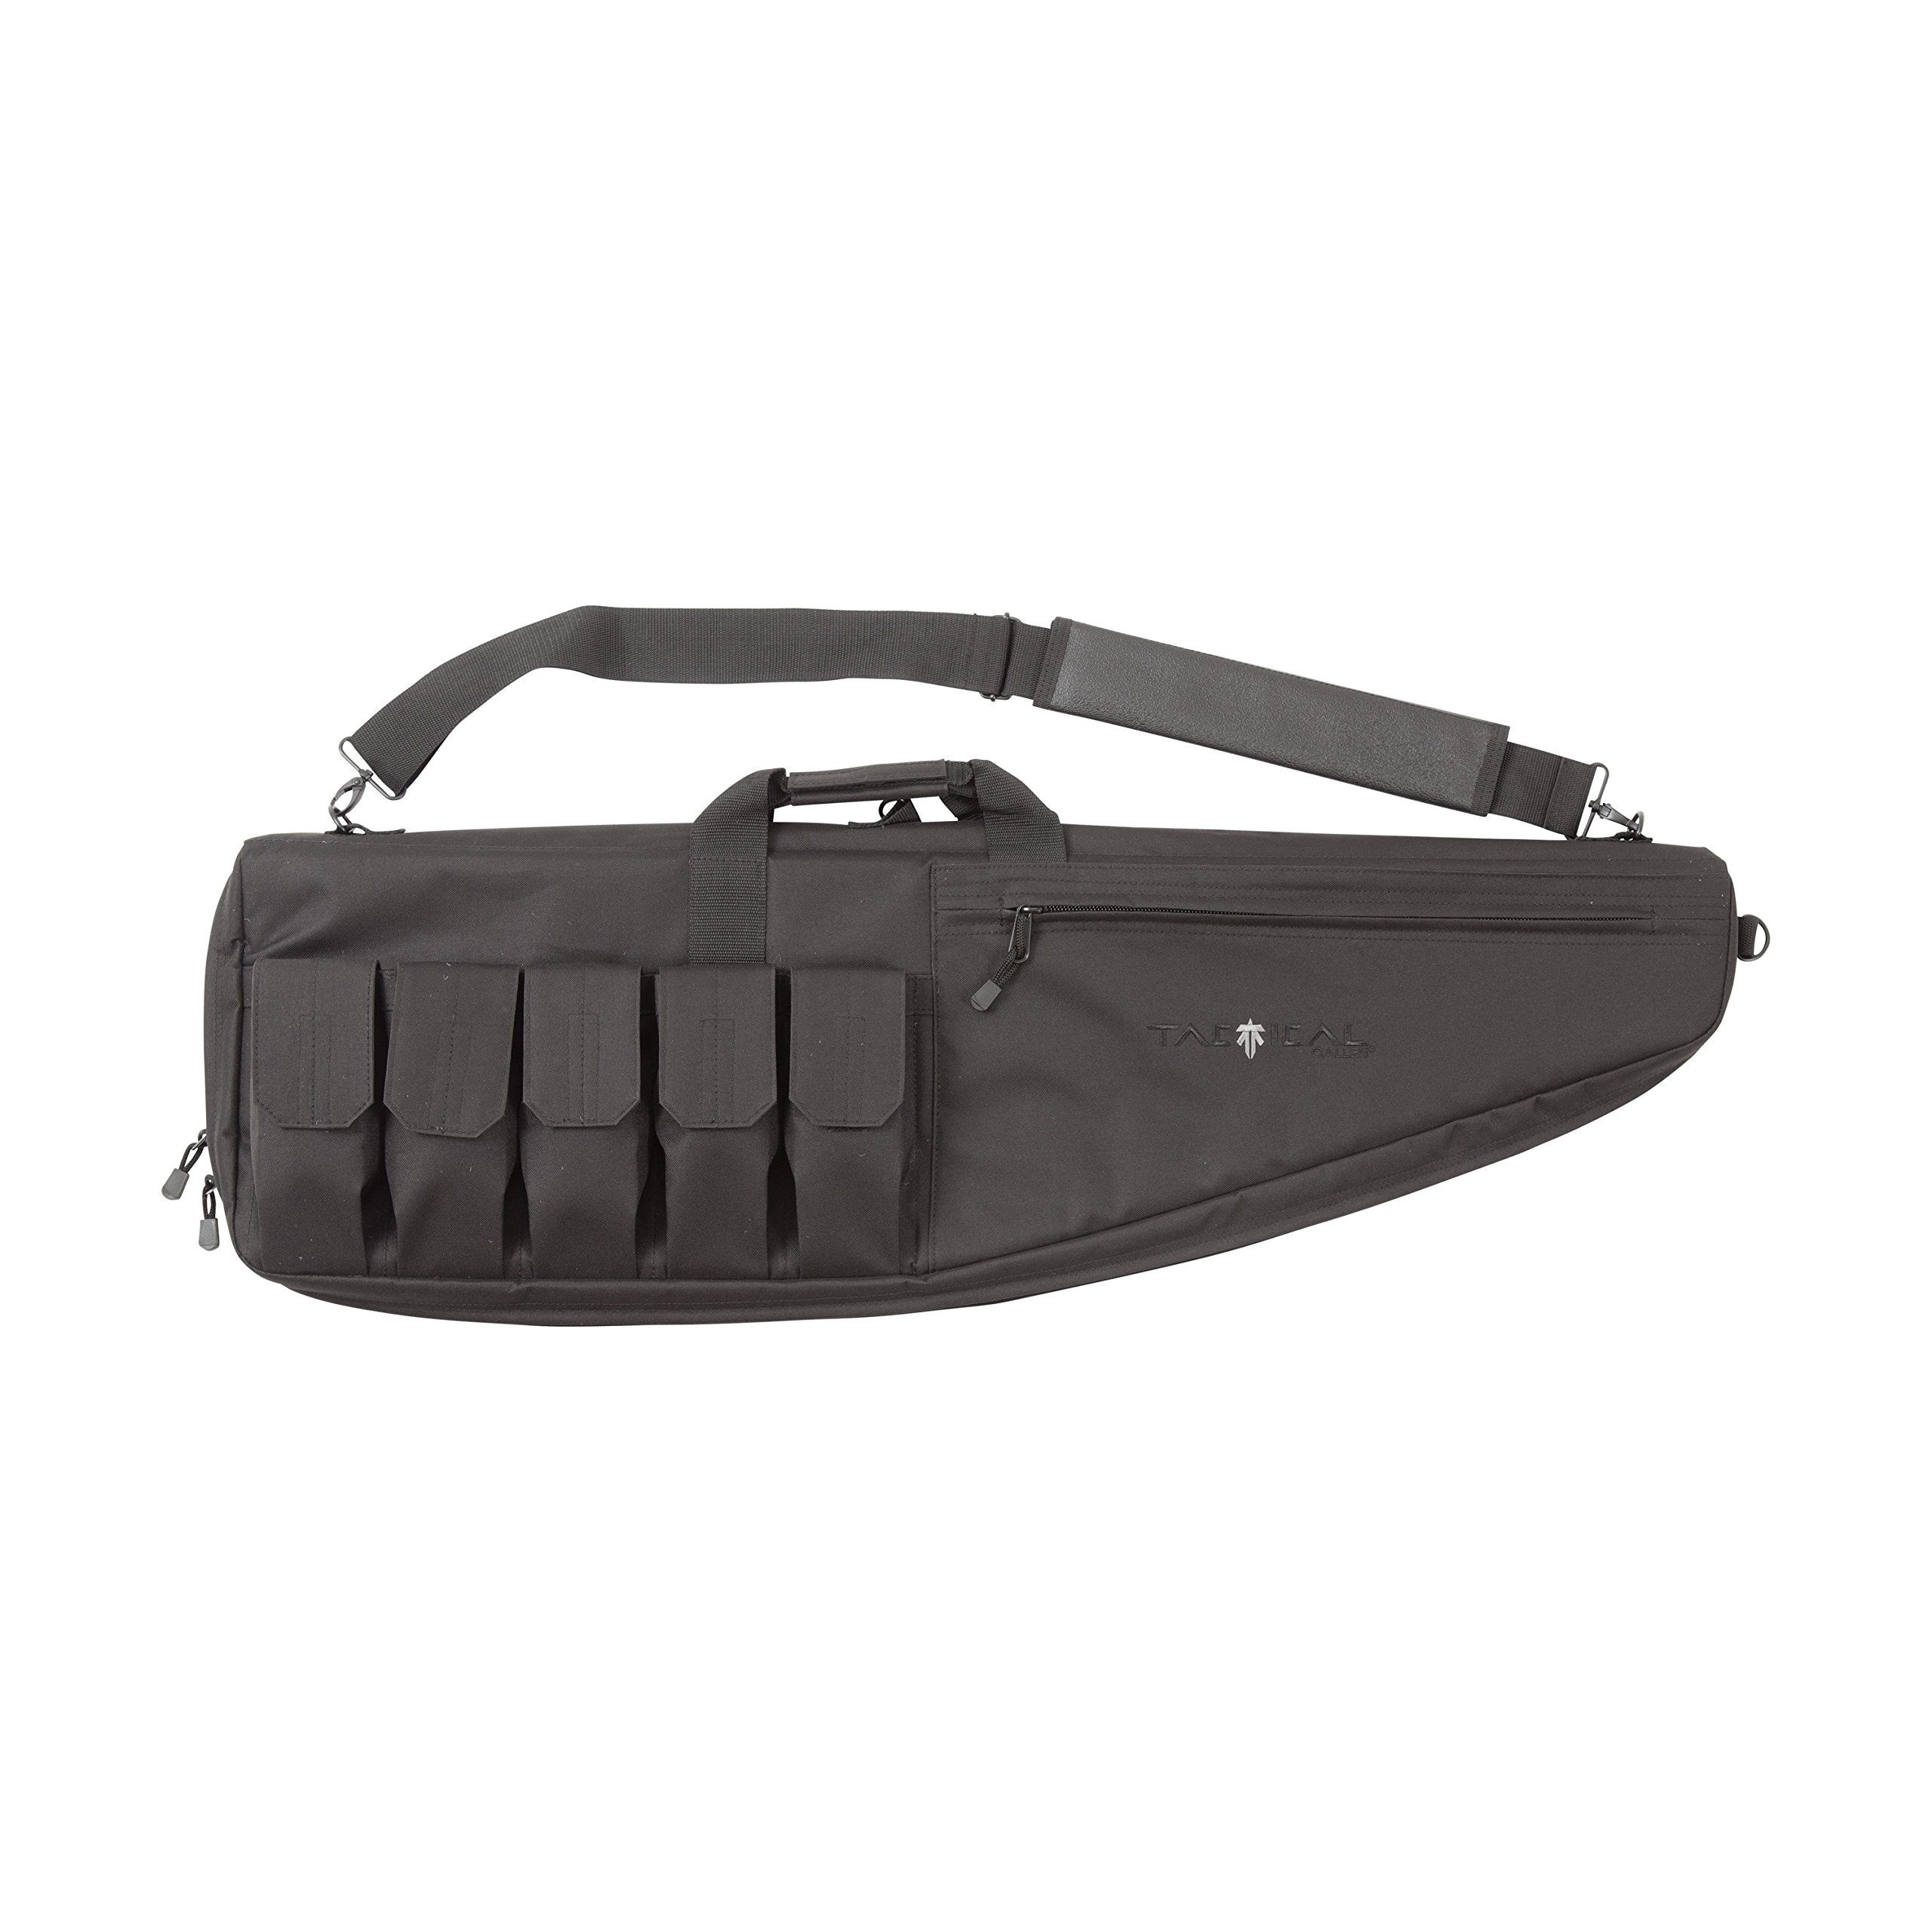 Sports Bags Efficient Tactical Gun Case For Car Front Seat Back Pocket Hang Bags Rifle Sling Tactical Pouch Holder Rack Hunting Accessories Durable Modeling Hunting Bags